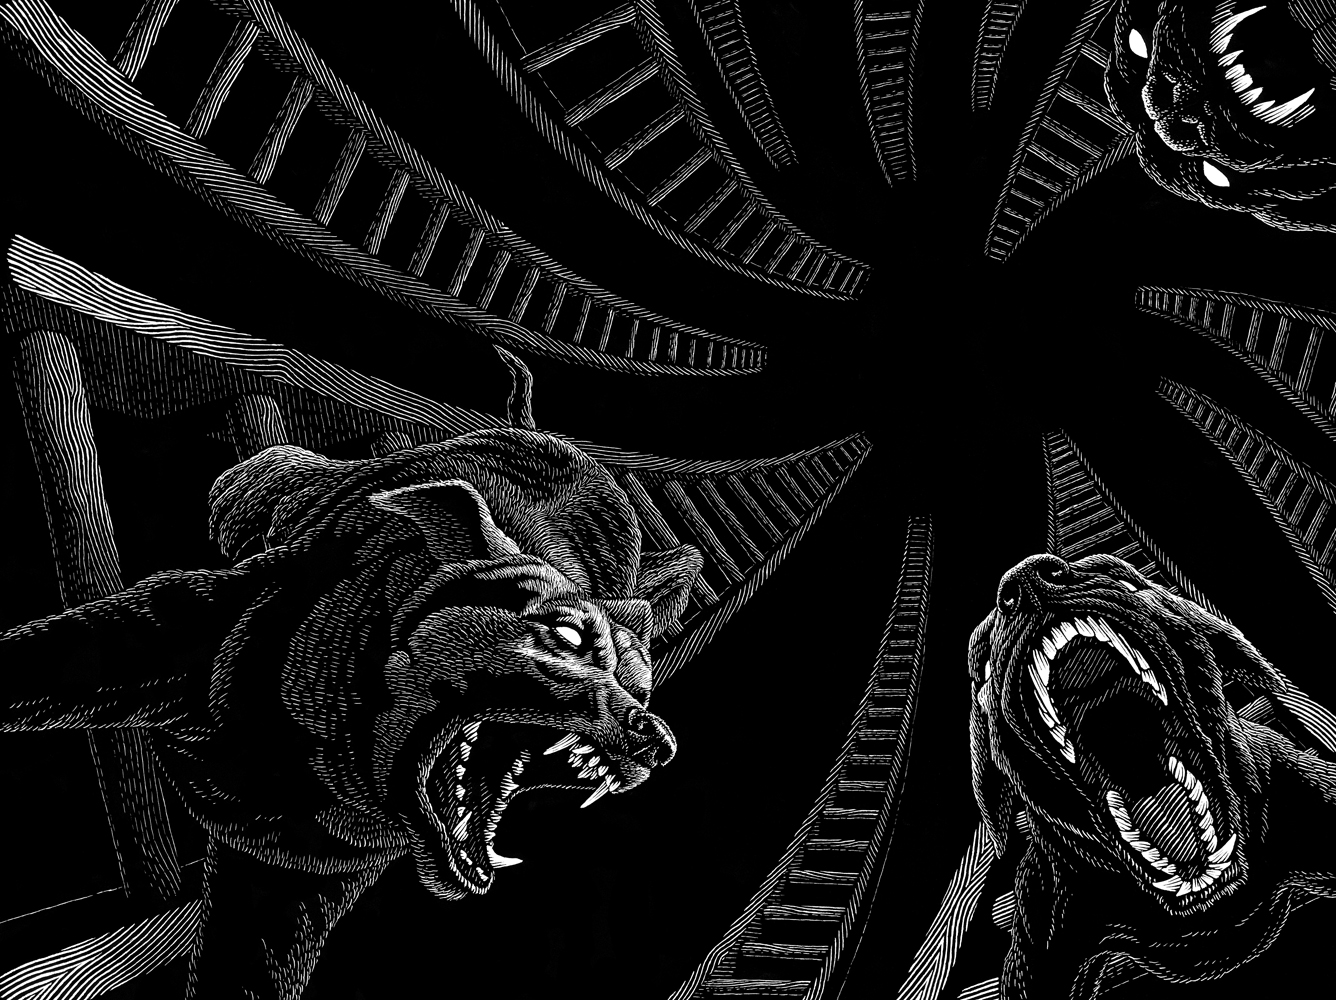 Dark Eden 1, Fear of Heights and Dogs